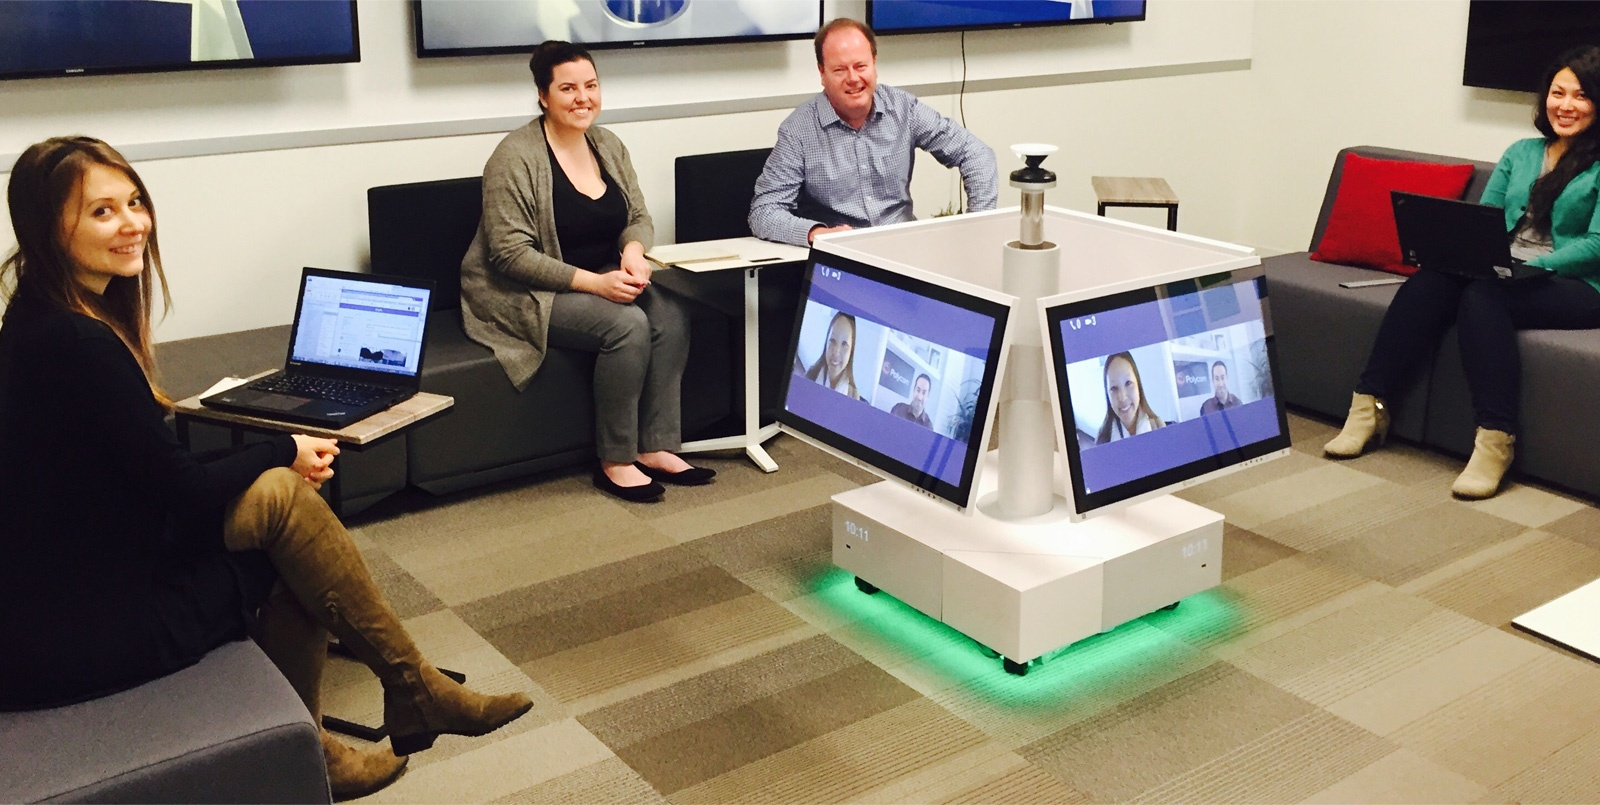 Millennials and the Huddle Room